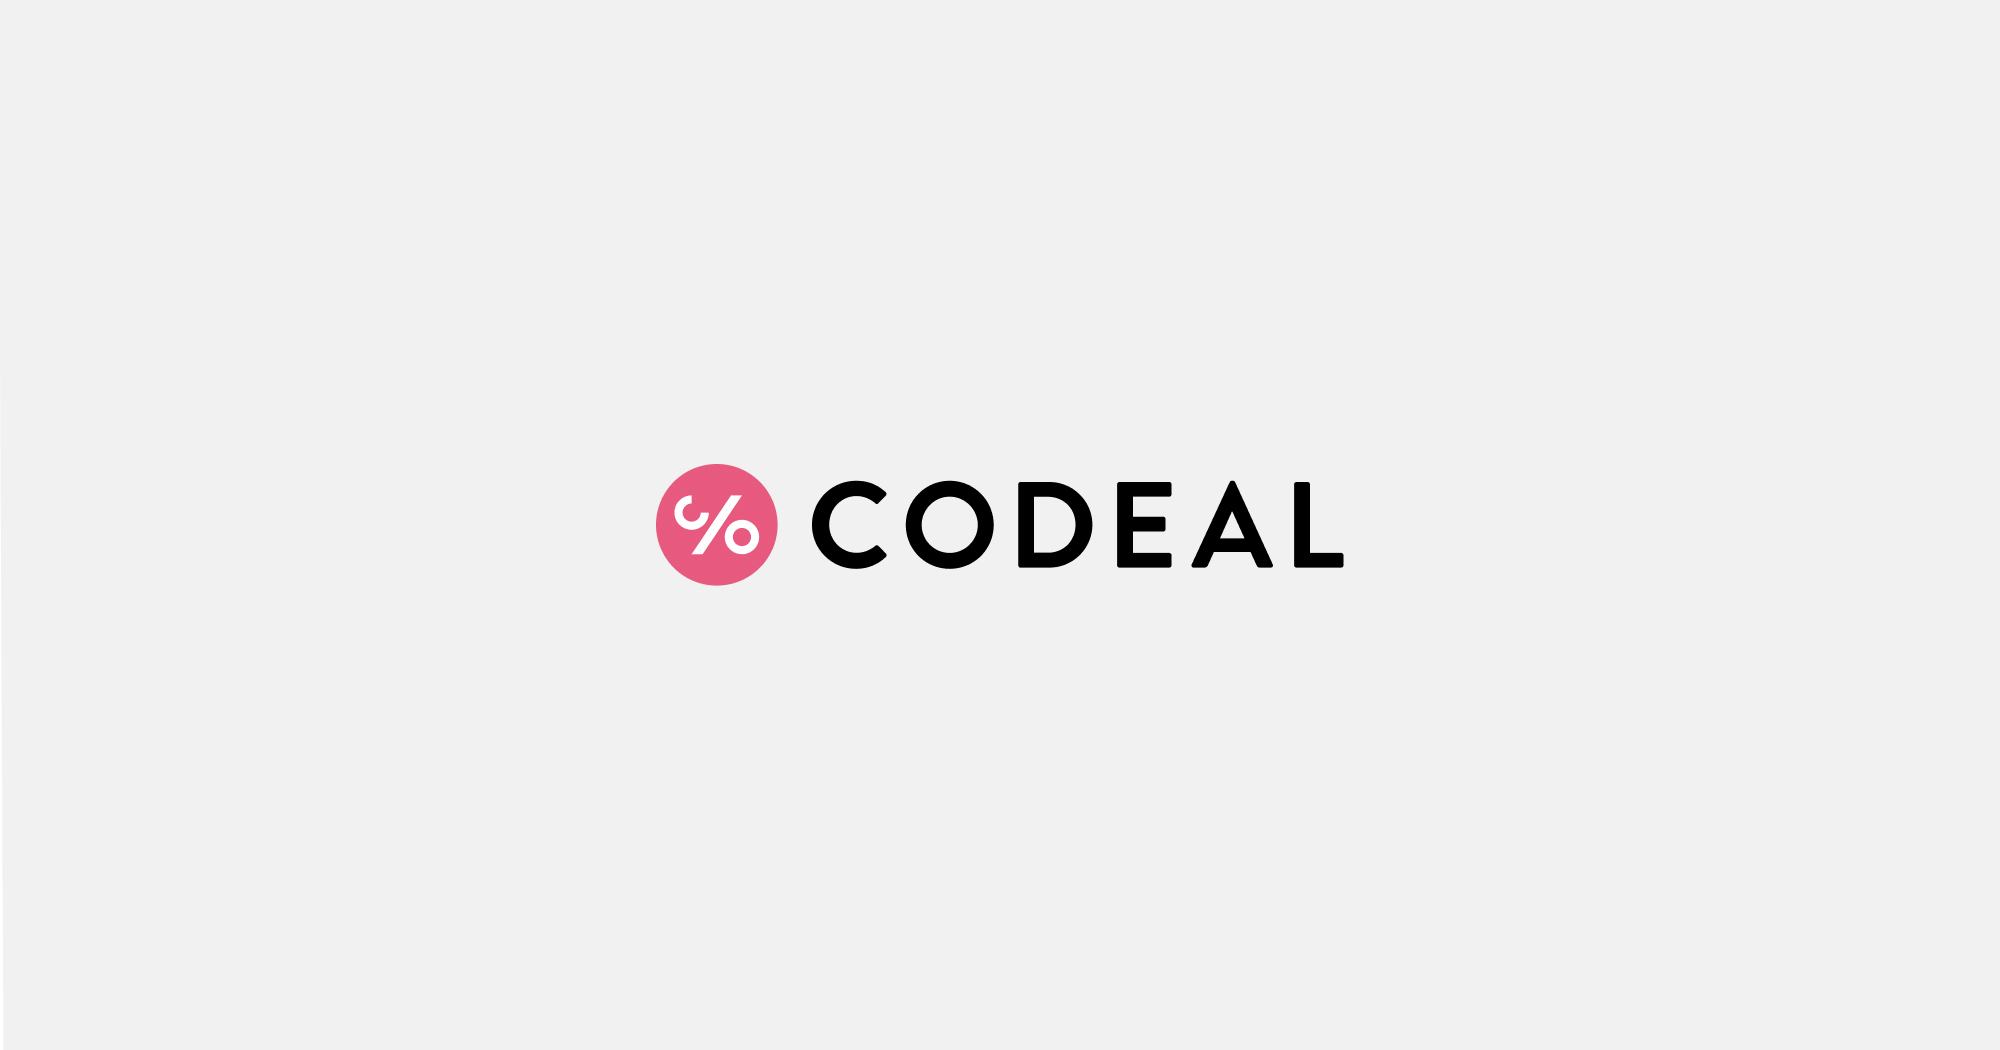 CODEAL